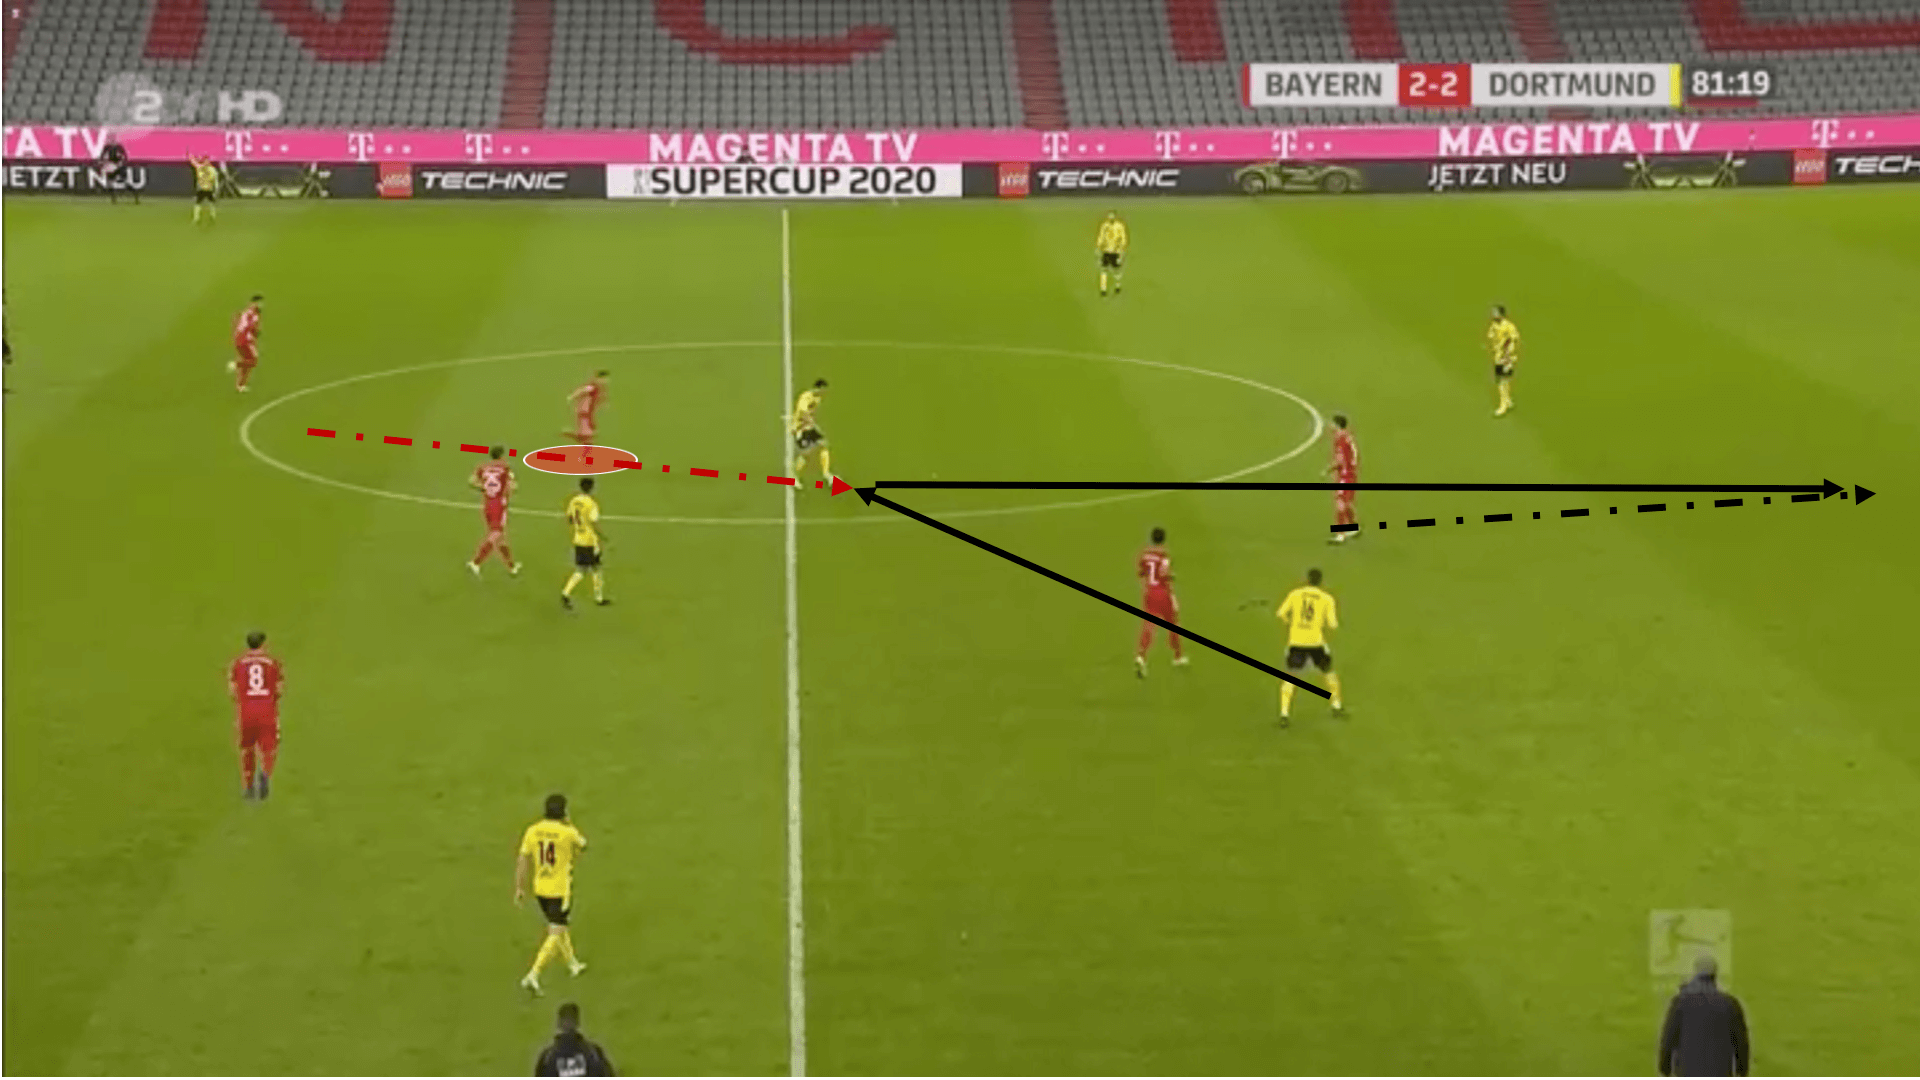 Bayern Munich - The attacking potential of the Goretzka/Kimmich pivot - tactical analysis - tactics